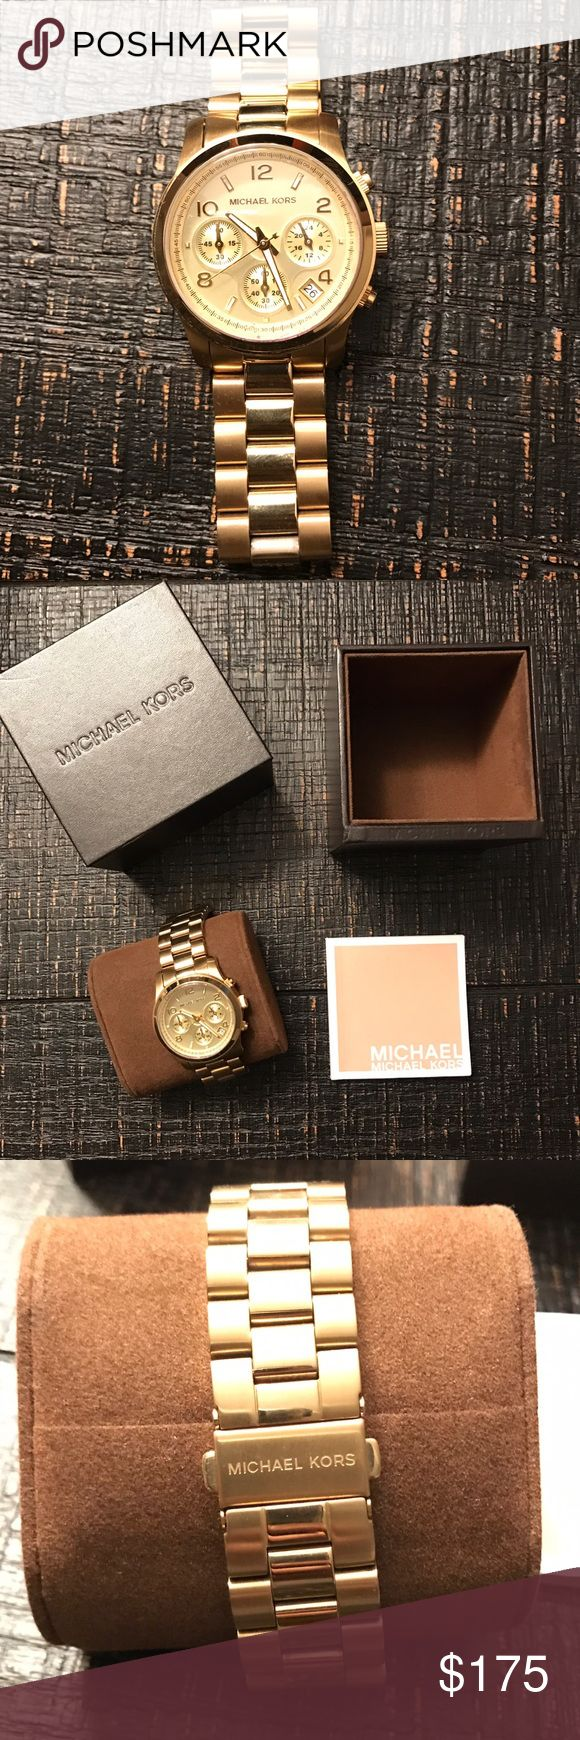 Michael Kors Men's Watch Beautiful all purpose men's Michael Kors Watch -100% Authentic -condition 10/10  - comes from a smoke free home Michael Kors Accessories Jewelry